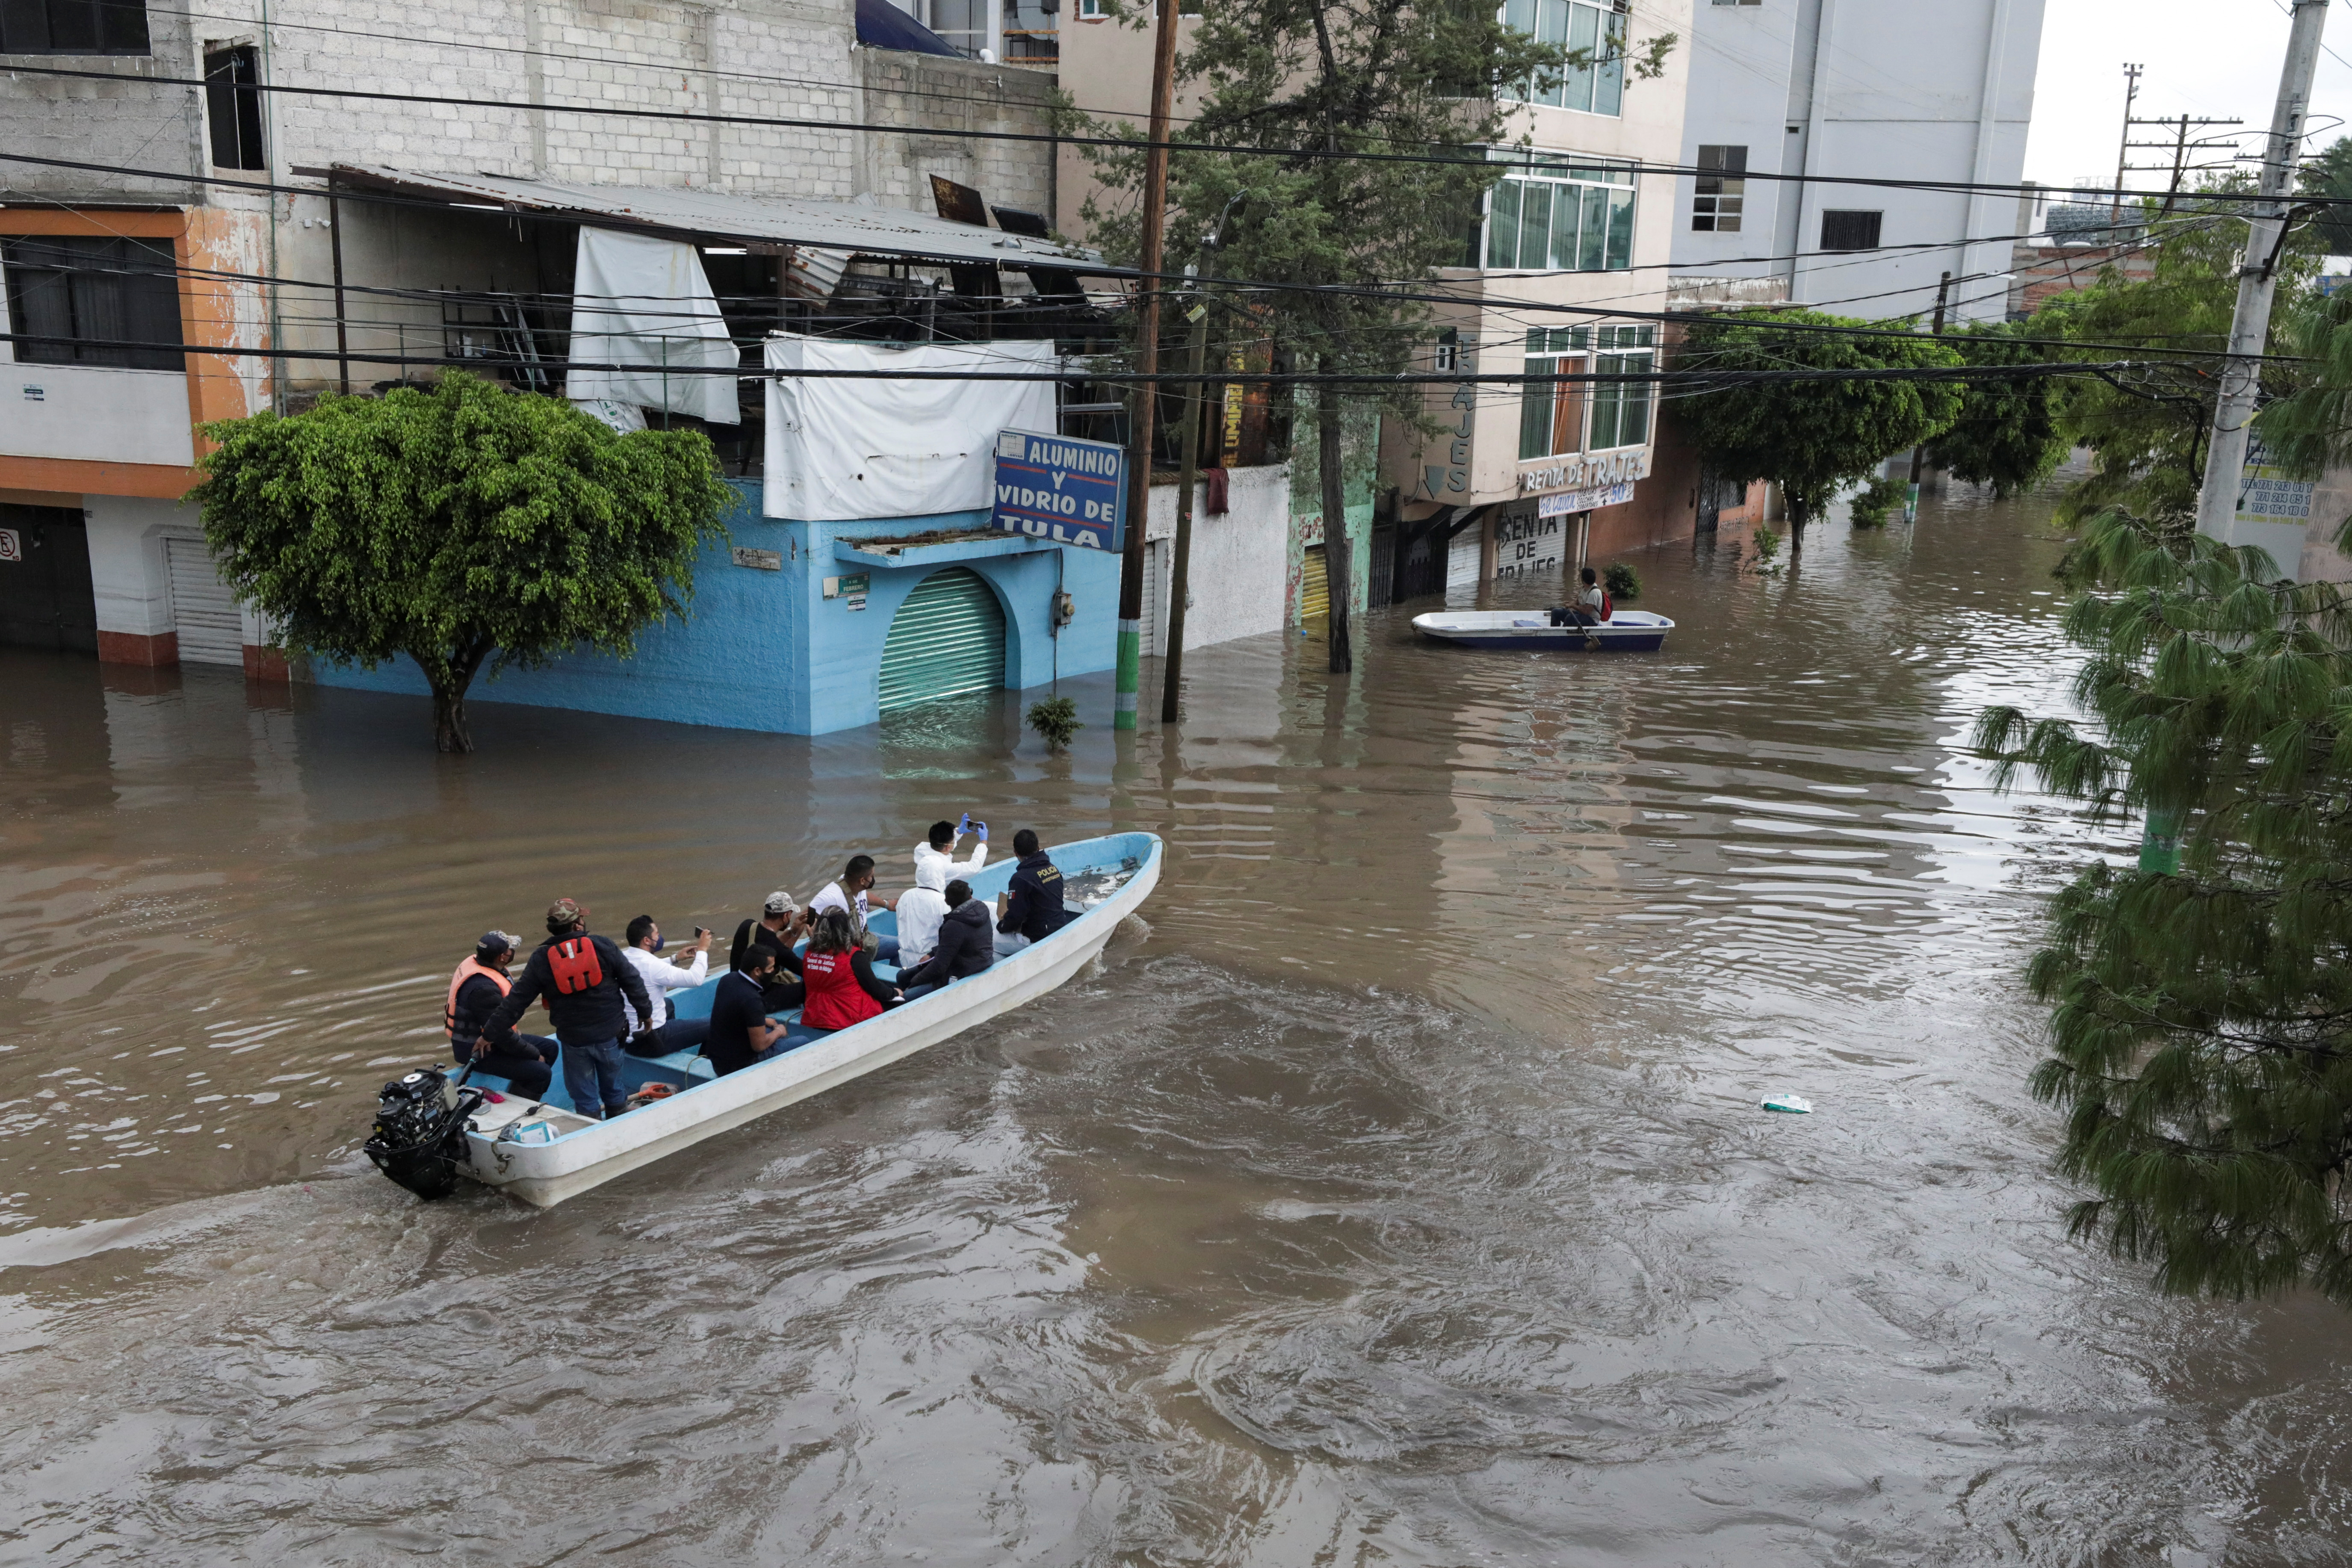 Rescue teams evacuate residents in a boat through flooded streets after heavy rainfall during Monday's night in the municipality of Tula de Allende, which left people dead, injured and cars and infrastructure damaged, in Tula de Allende, on the outskirts of Mexico City, Mexico September 7, 2021. REUTERS/Henry Romero